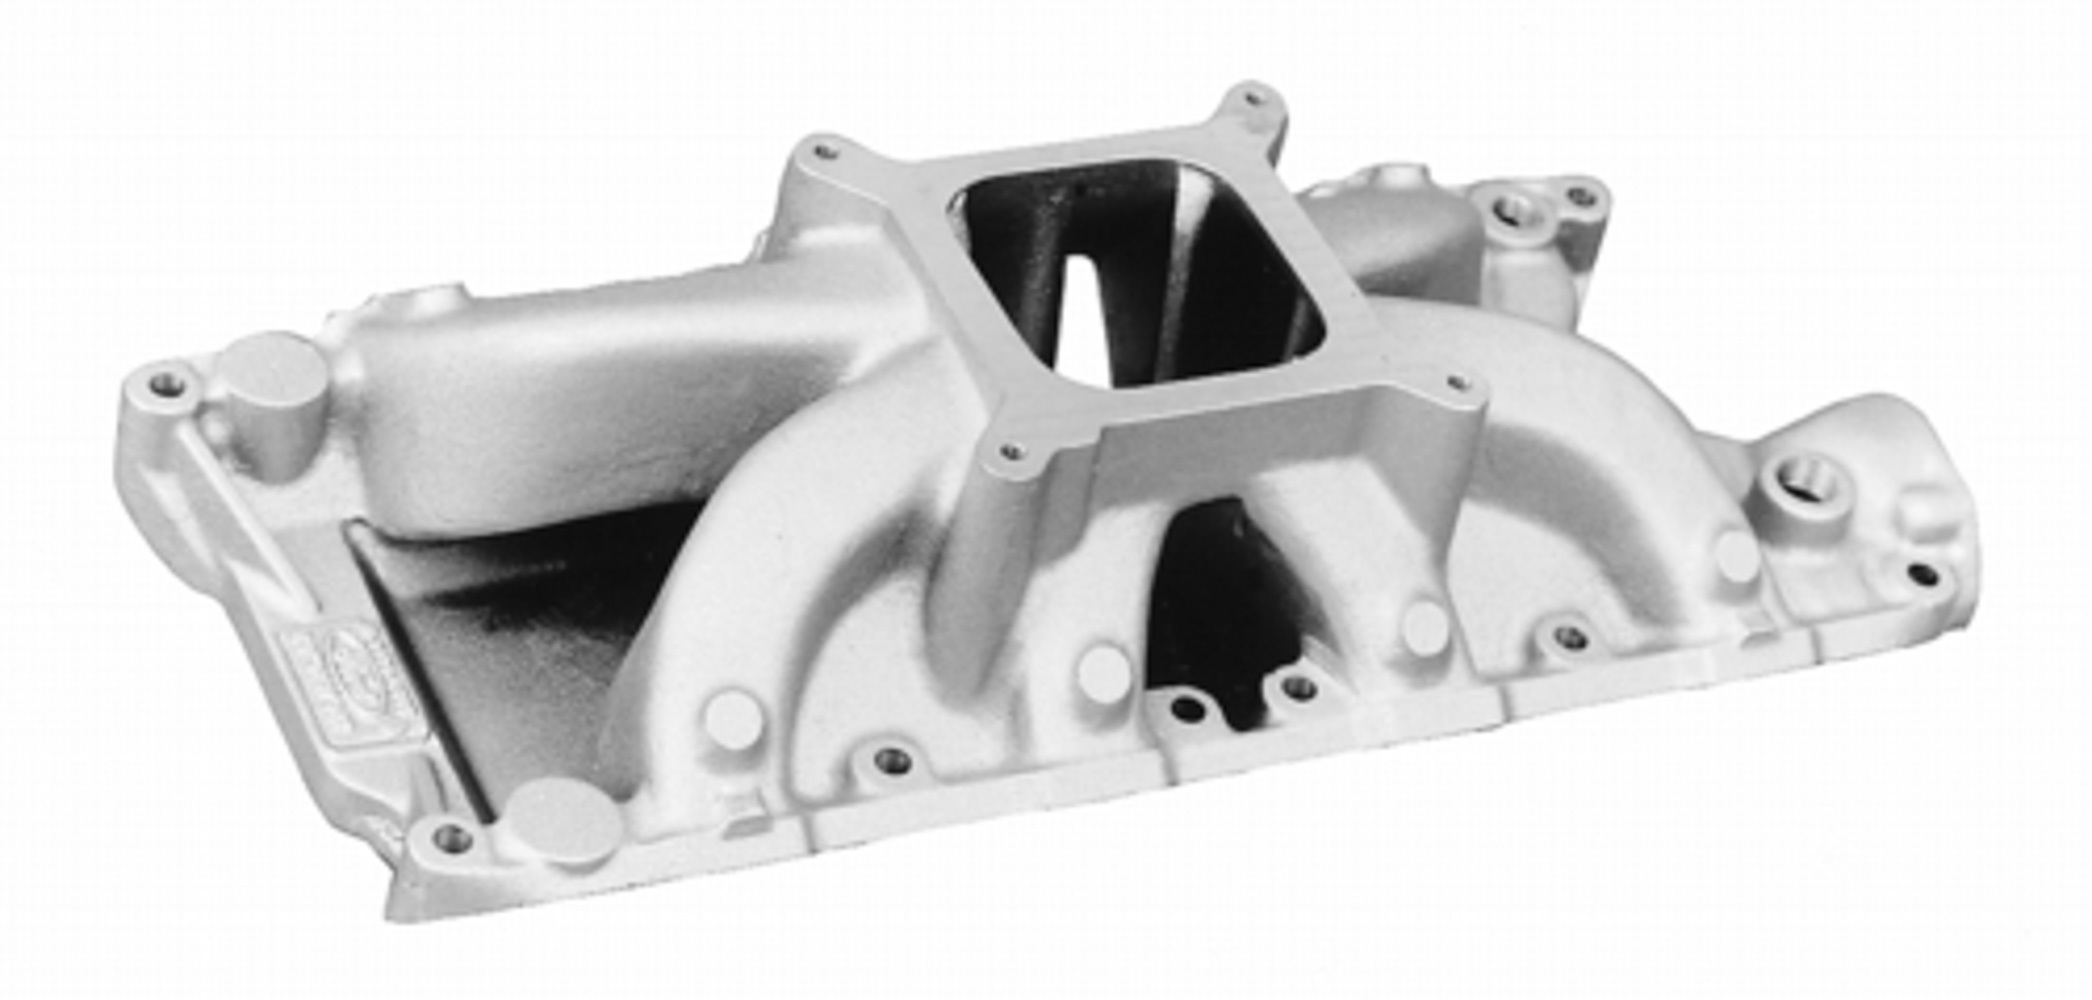 Ford M9424-D302 Intake Manifold, Victor JR., Square Bore, Single Plane, Aluminum, Natural, Small Block Ford, Each